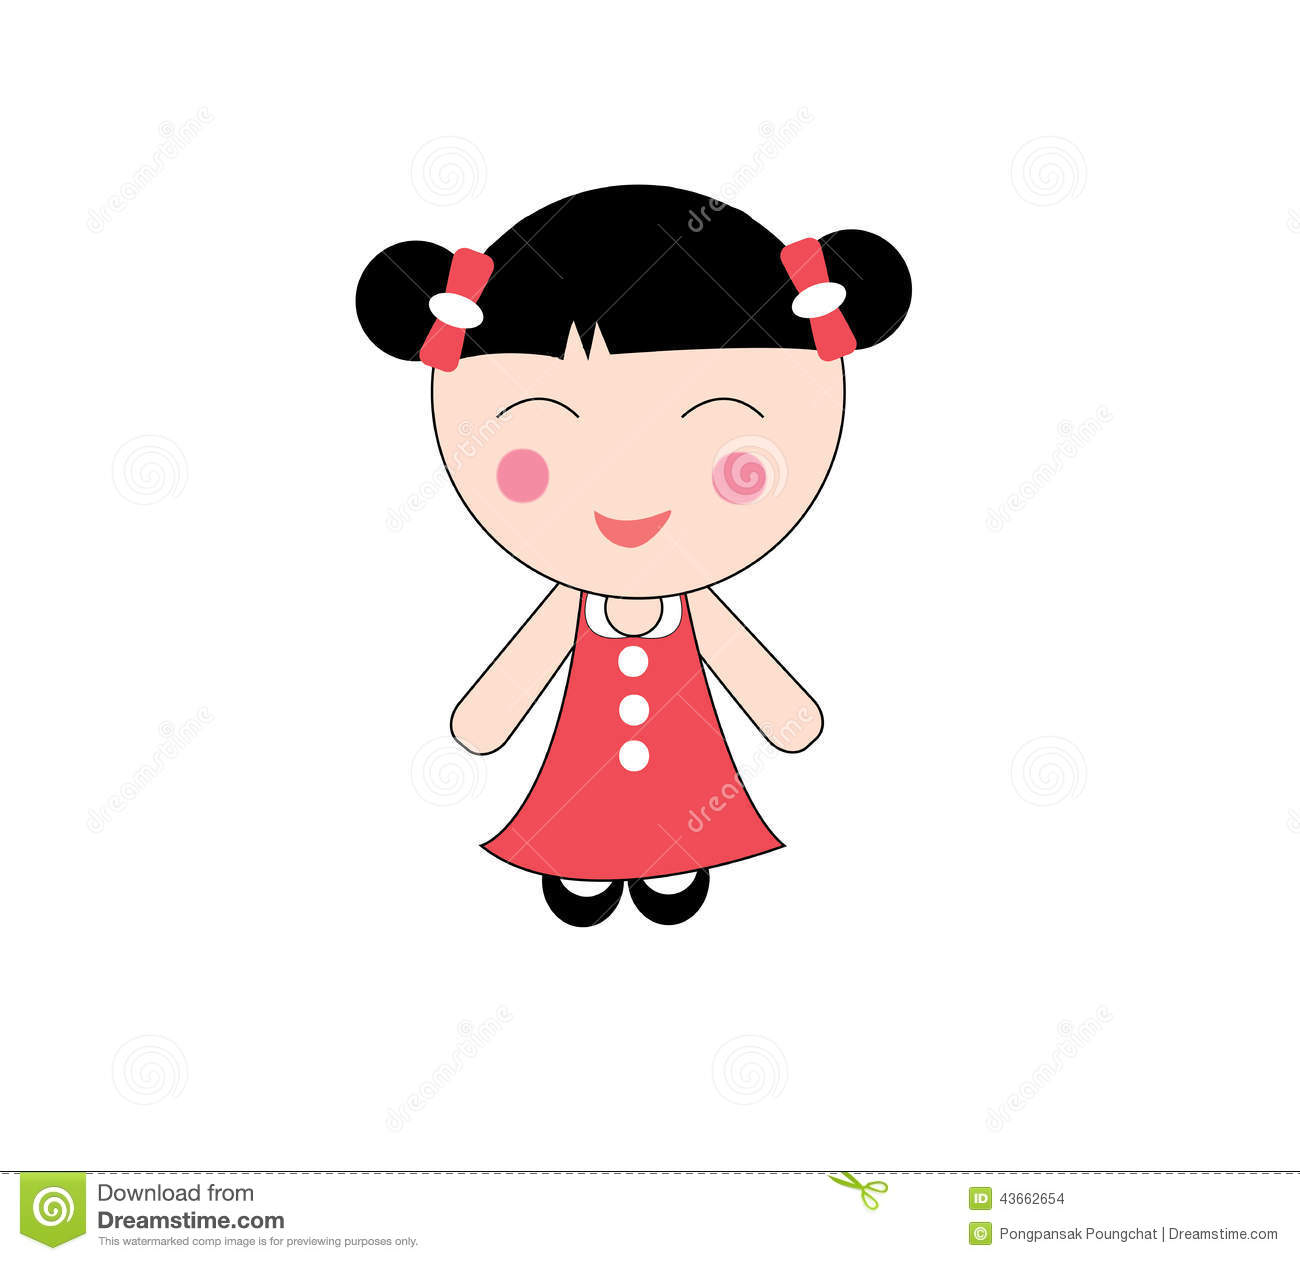 Chinese girl stock vector. Illustration of clipart, cartoons.